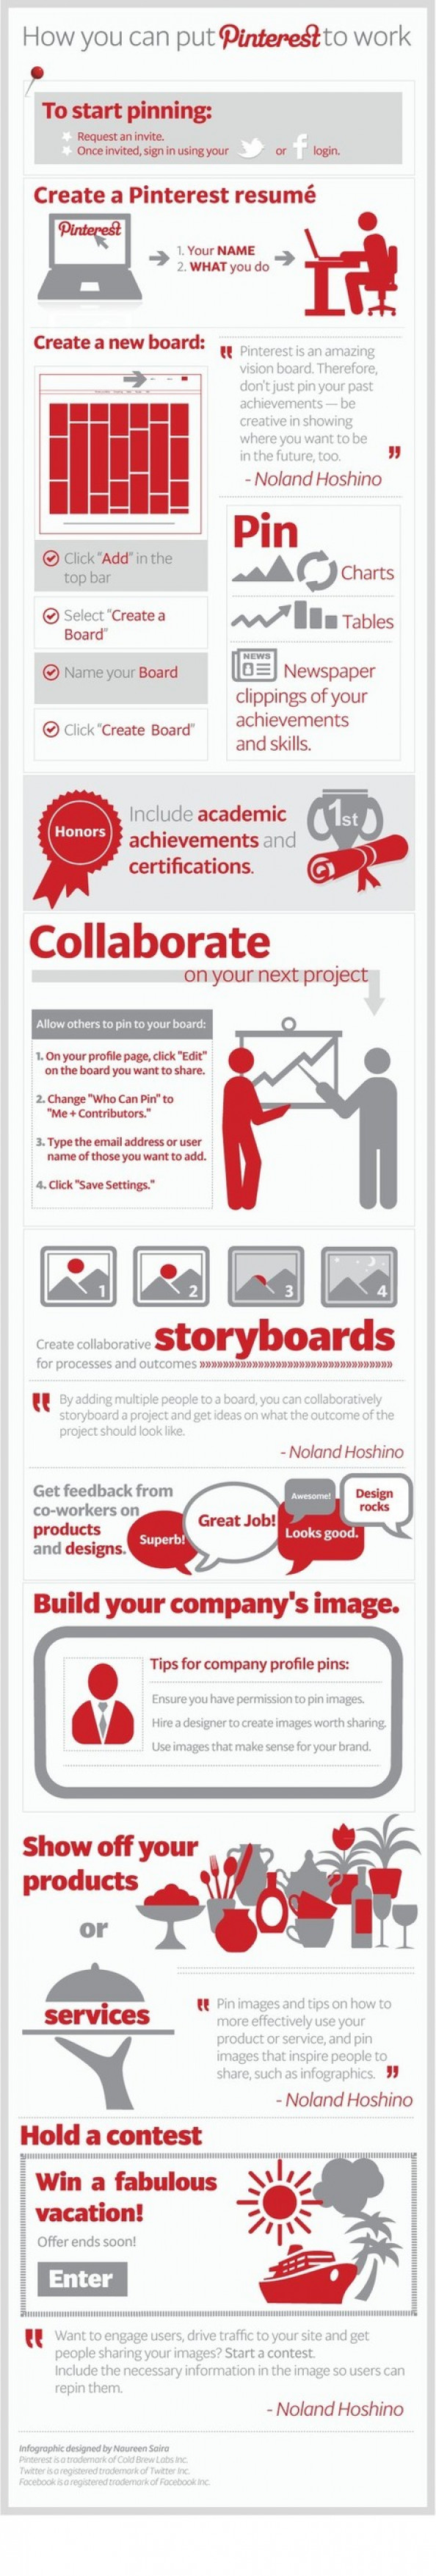 Networking Social Medias - Infographic: How to put Pinterest to work  Infographic